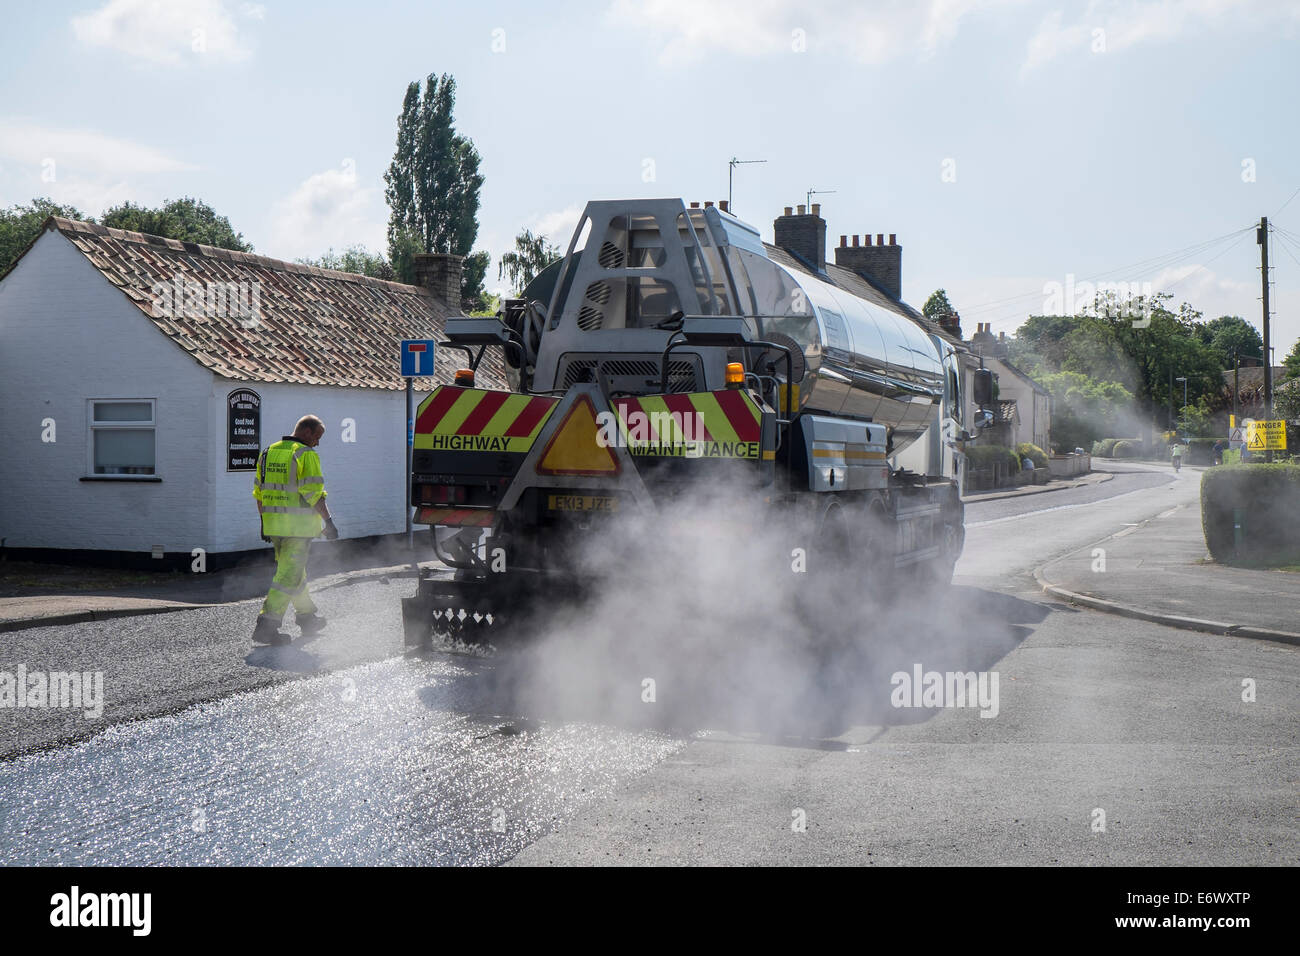 road-tar-tanker-spreading-hot-tar-to-take-chippings-fen-road-milton-E6WXTP.jpg